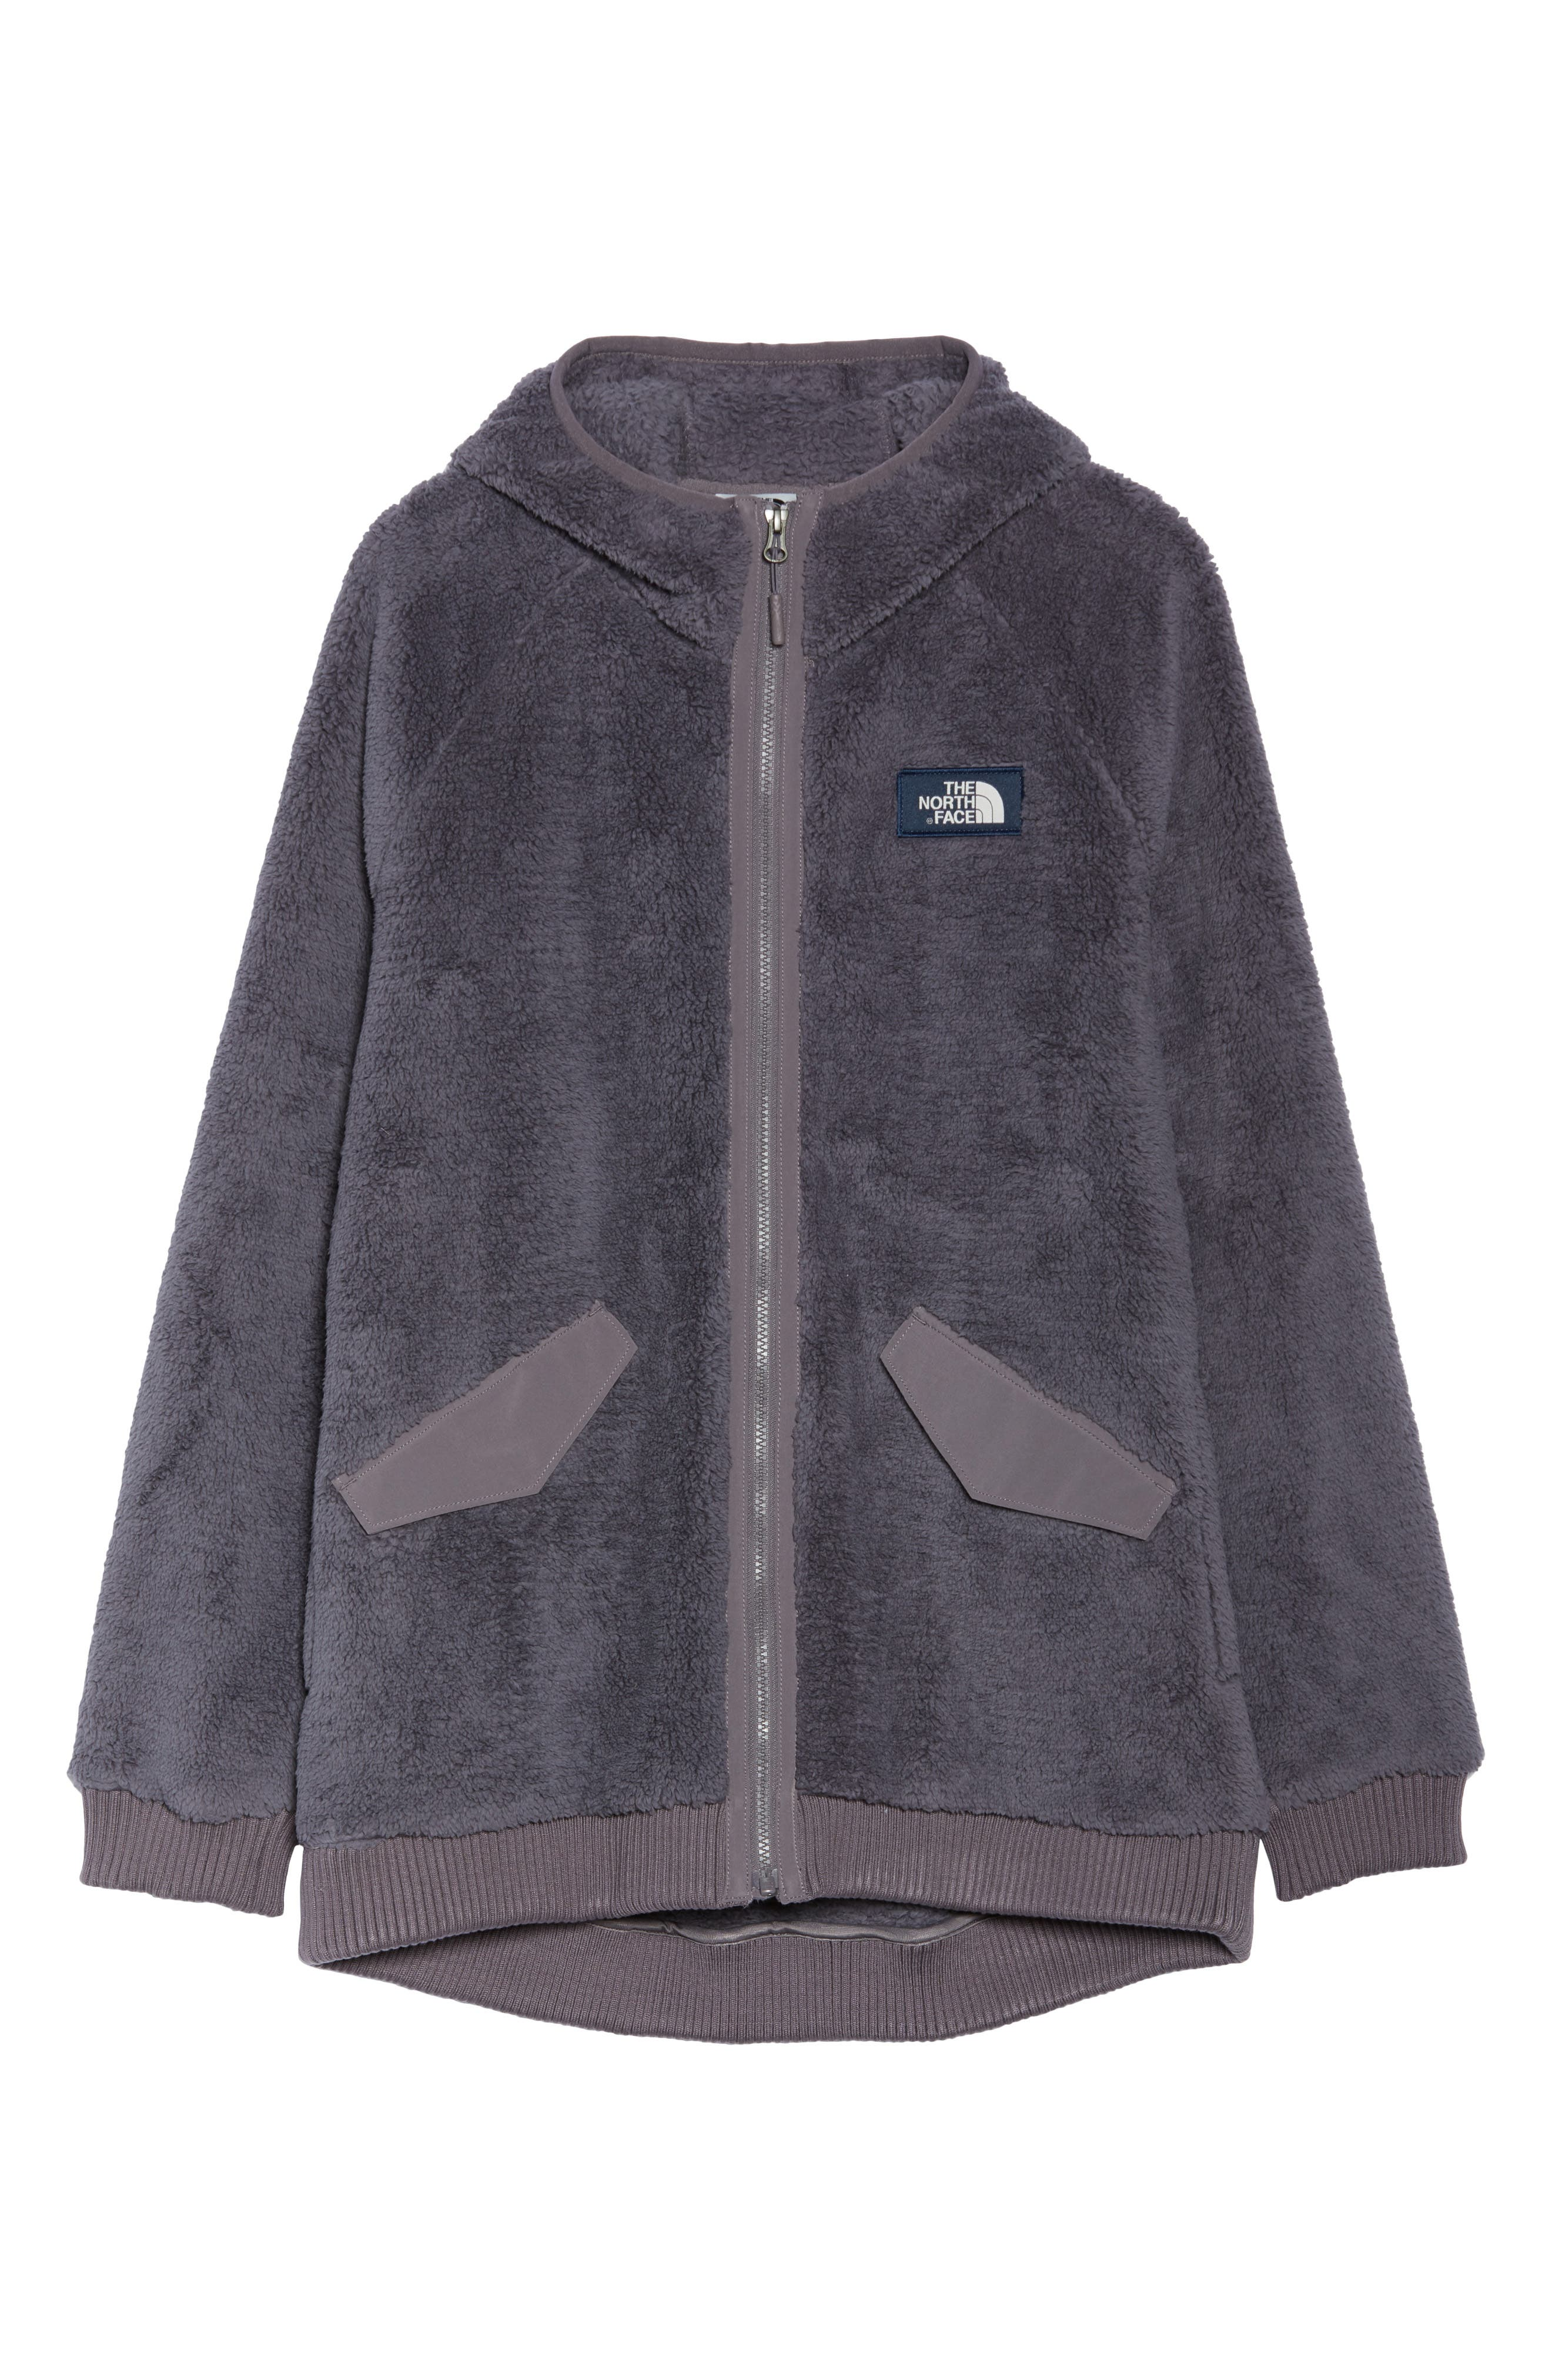 THE NORTH FACE, Campshire Bomber Jacket, Alternate thumbnail 6, color, 021